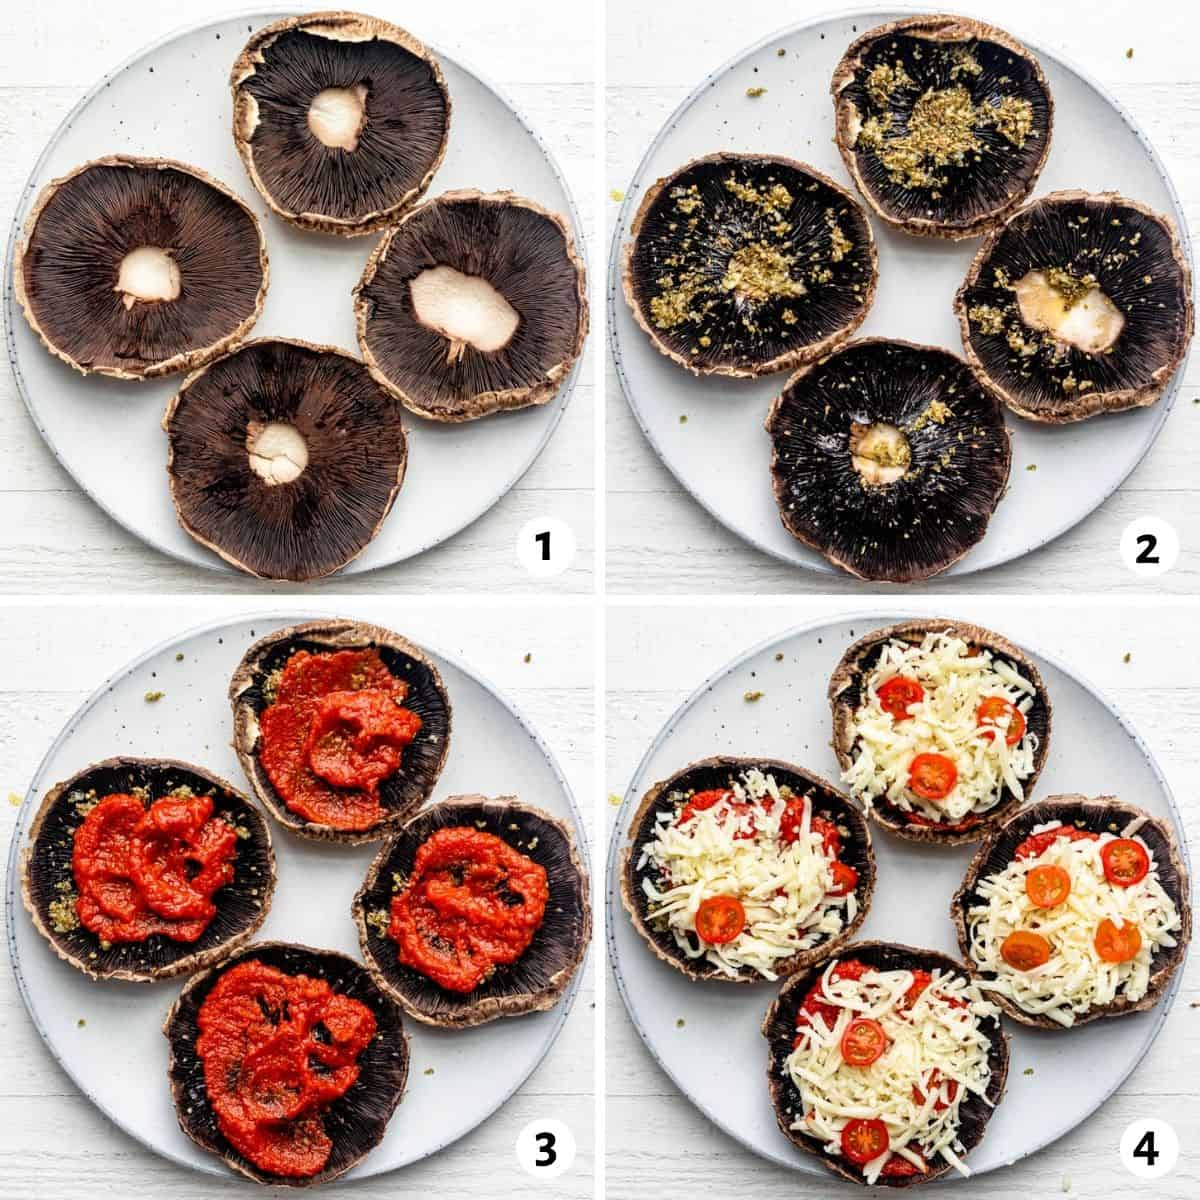 4 image collage to show how to build the pizzas